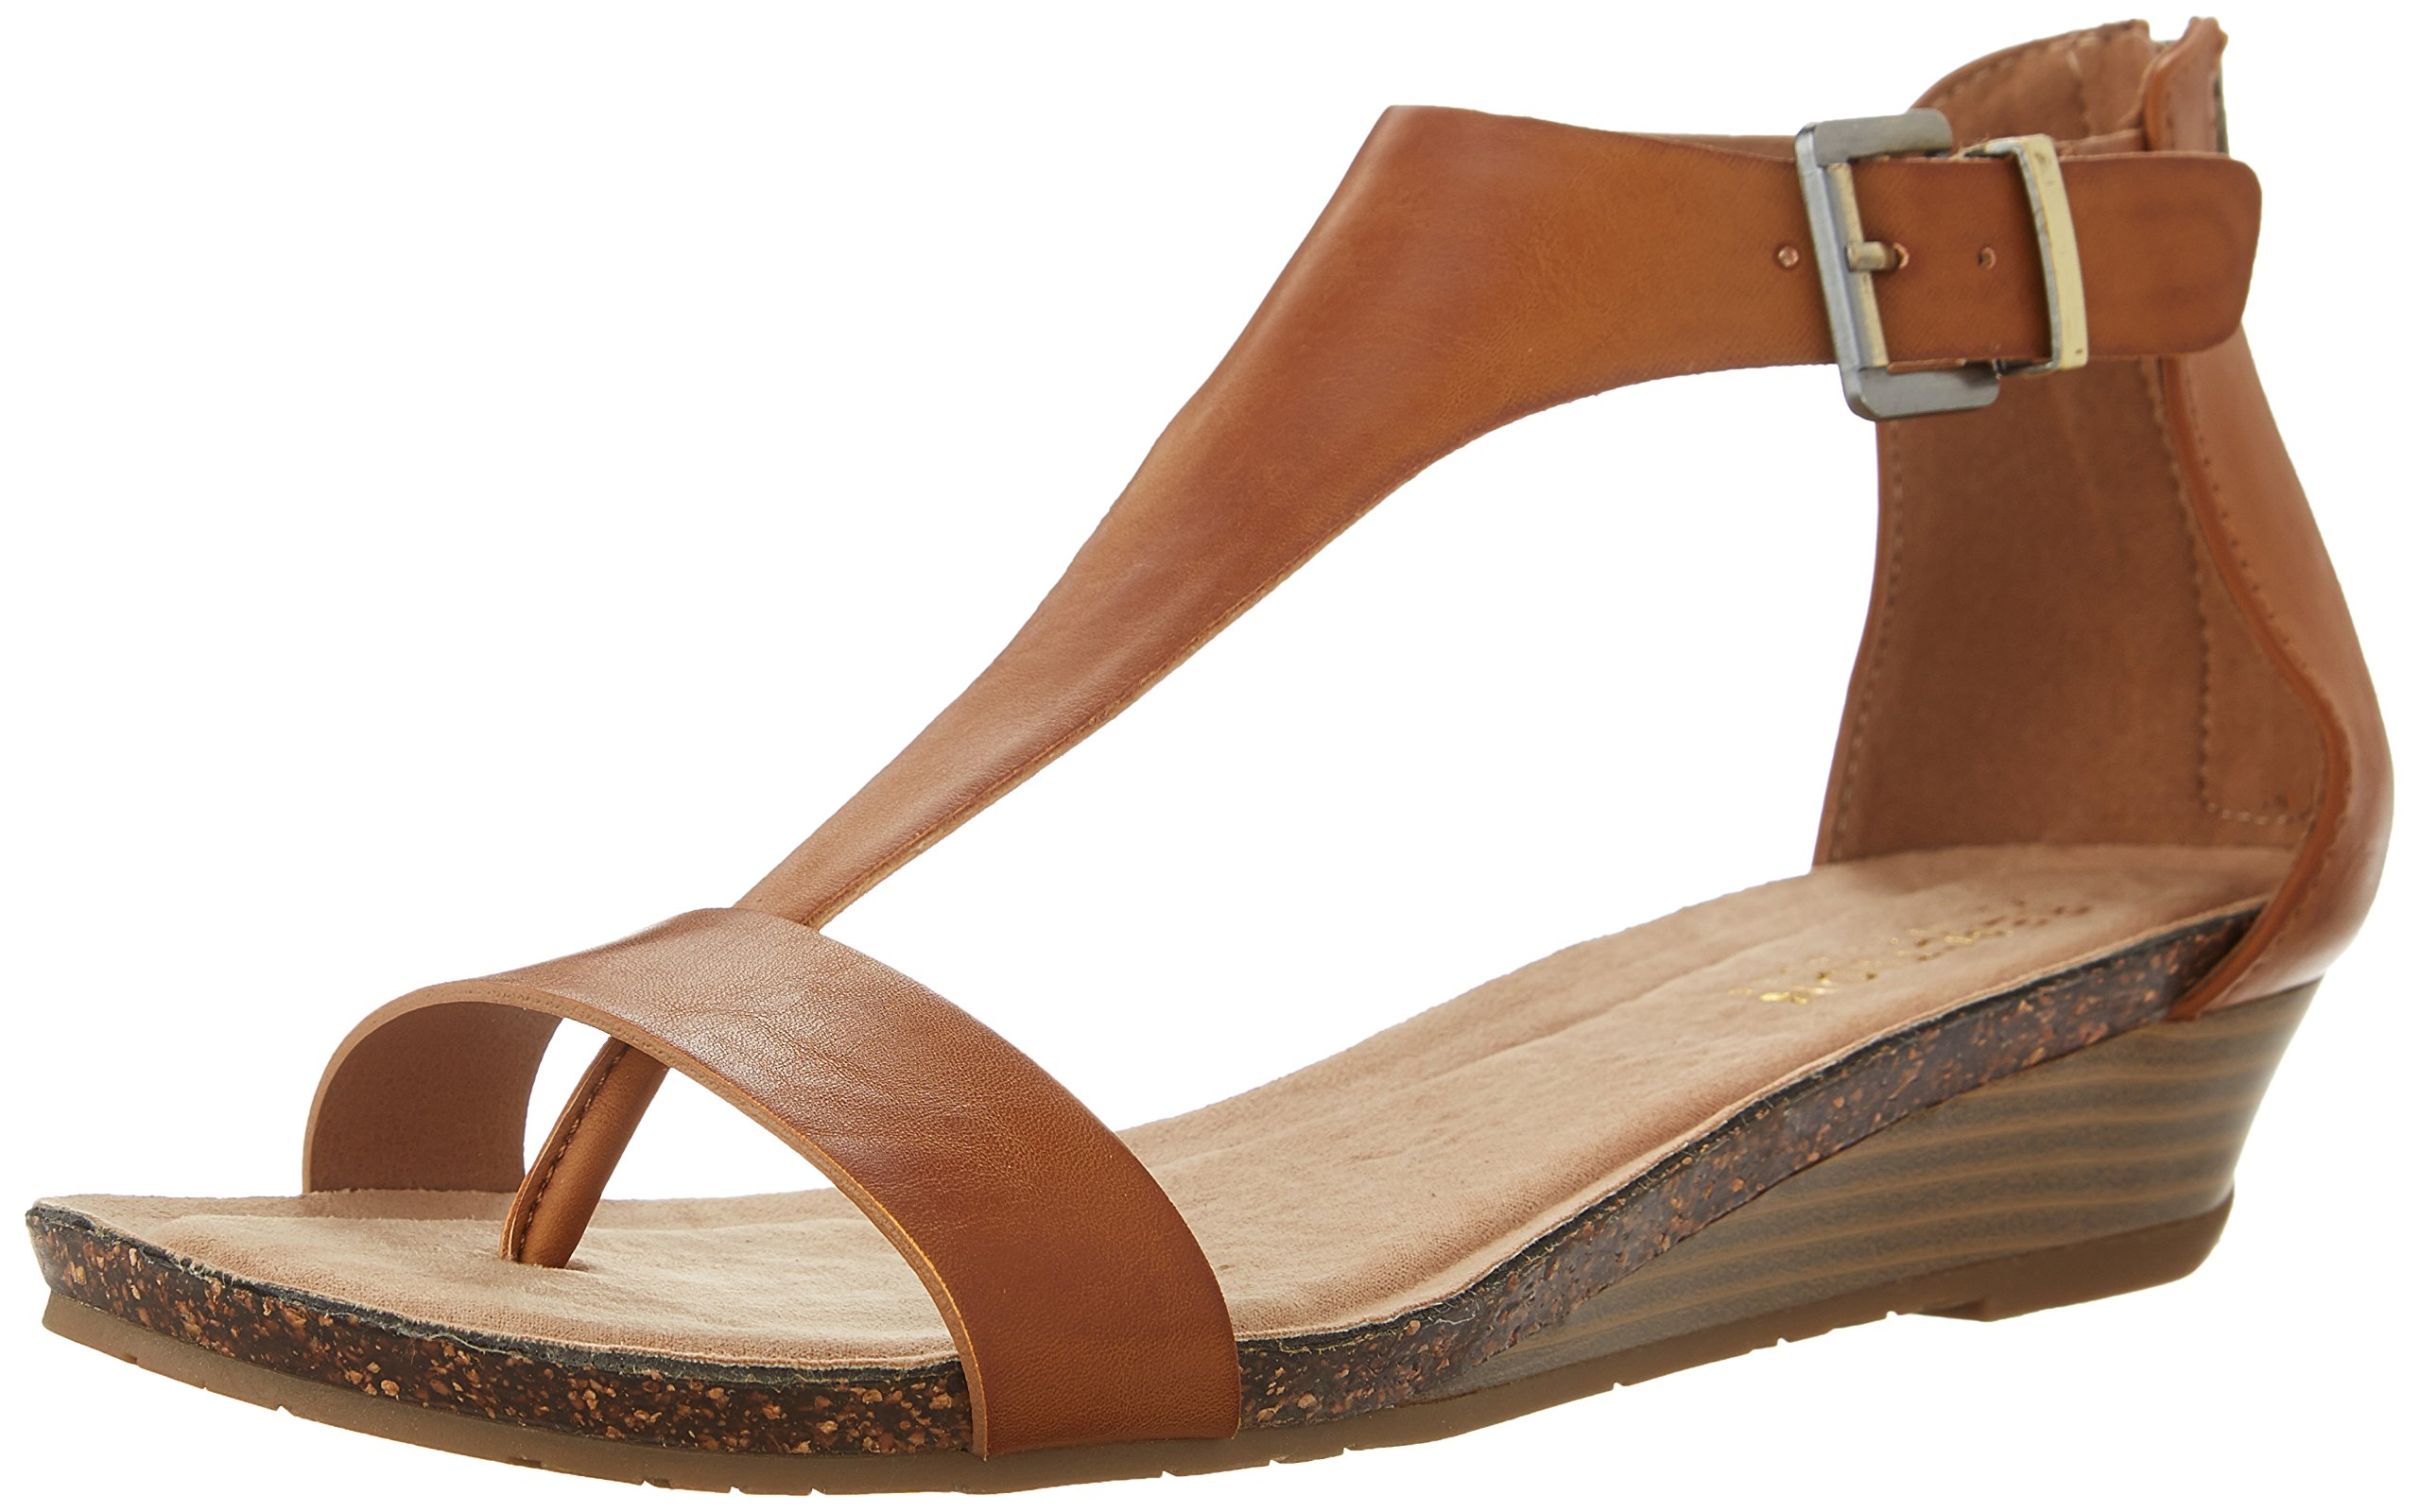 Kenneth Cole REACTION Women's Great GAL Sandal, Toffee, 8.5 M US